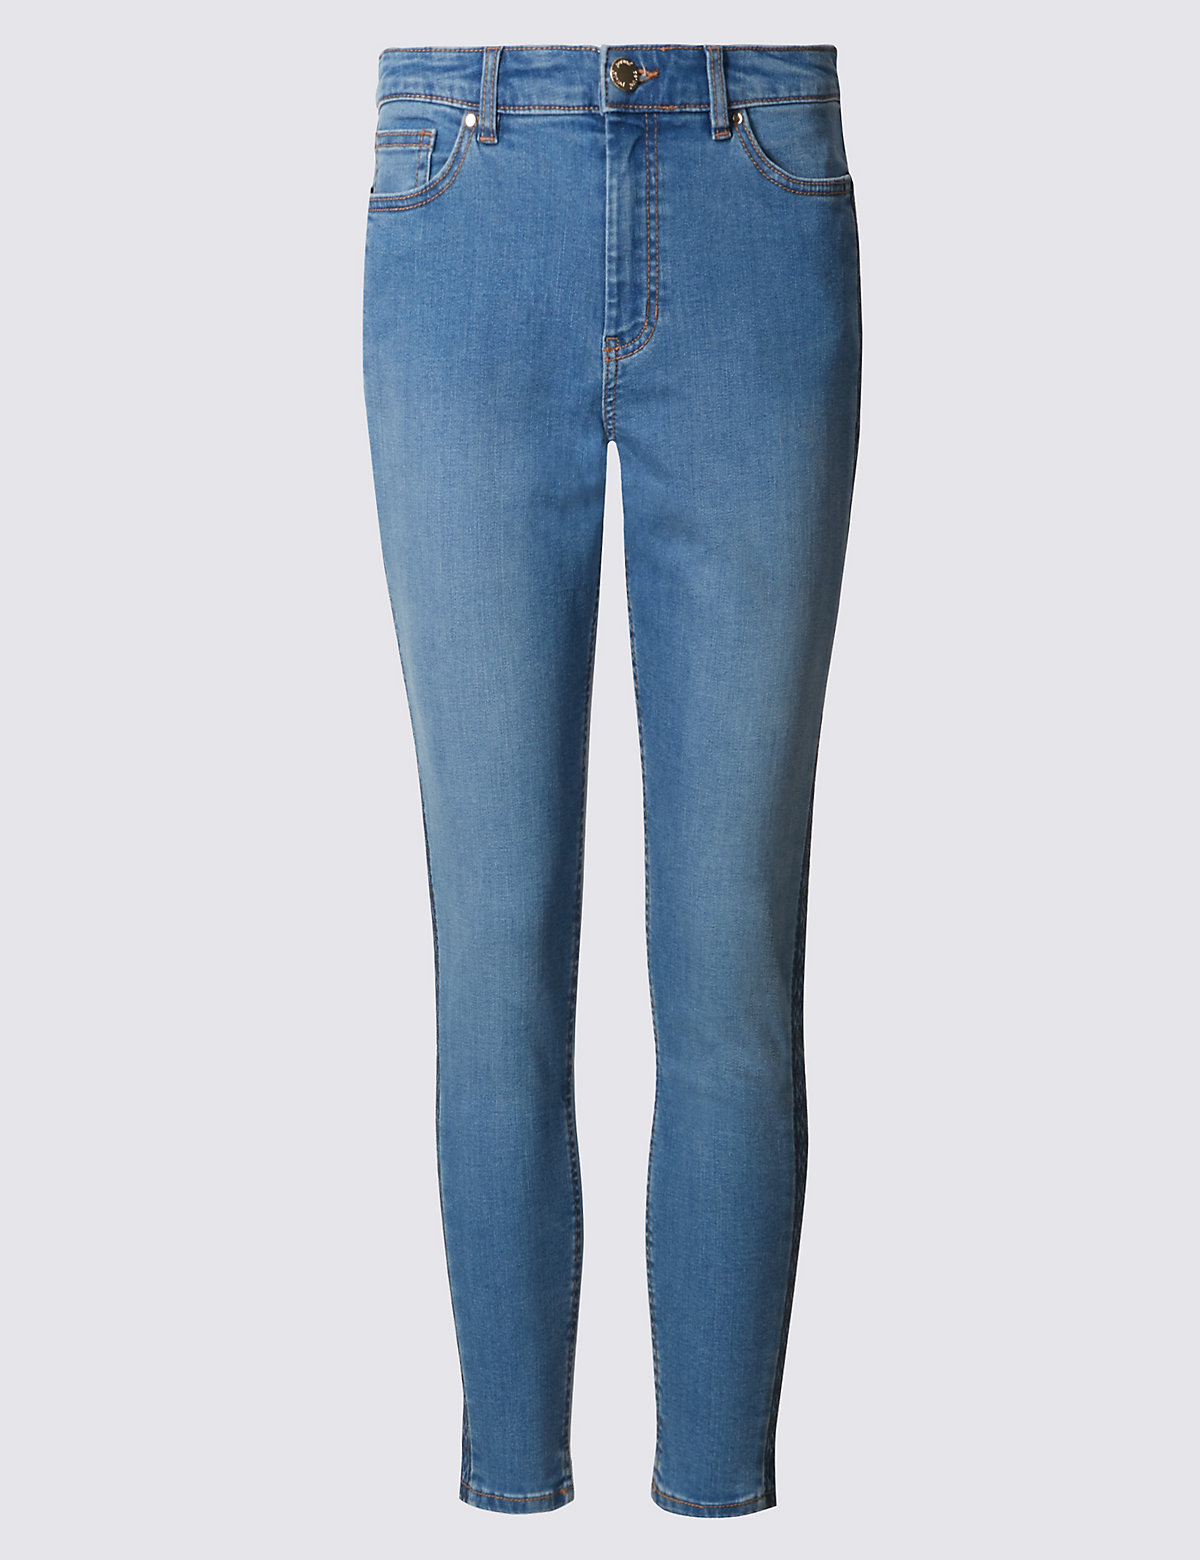 Per Una High Rise Skinny Leg Jeans Marks and Spencer P22501124